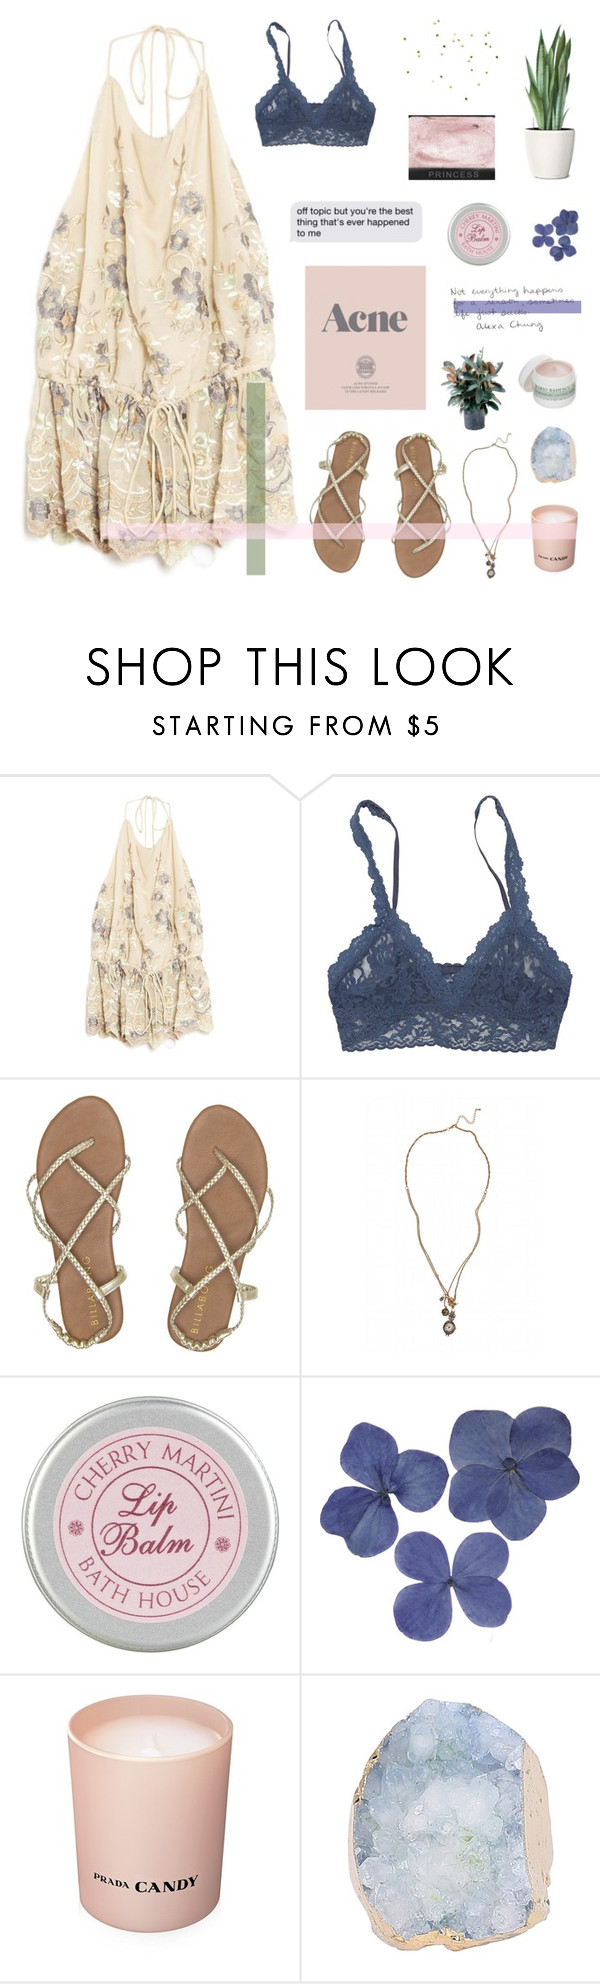 """""""happy 4 years on polyvore!"""" by my-pink-wings ❤ liked on Polyvore featuring Alexander Wang, Hanky Panky, NARS Cosmetics, Billabong, Prada, The Unbranded Brand and Mario Badescu Skin Care"""